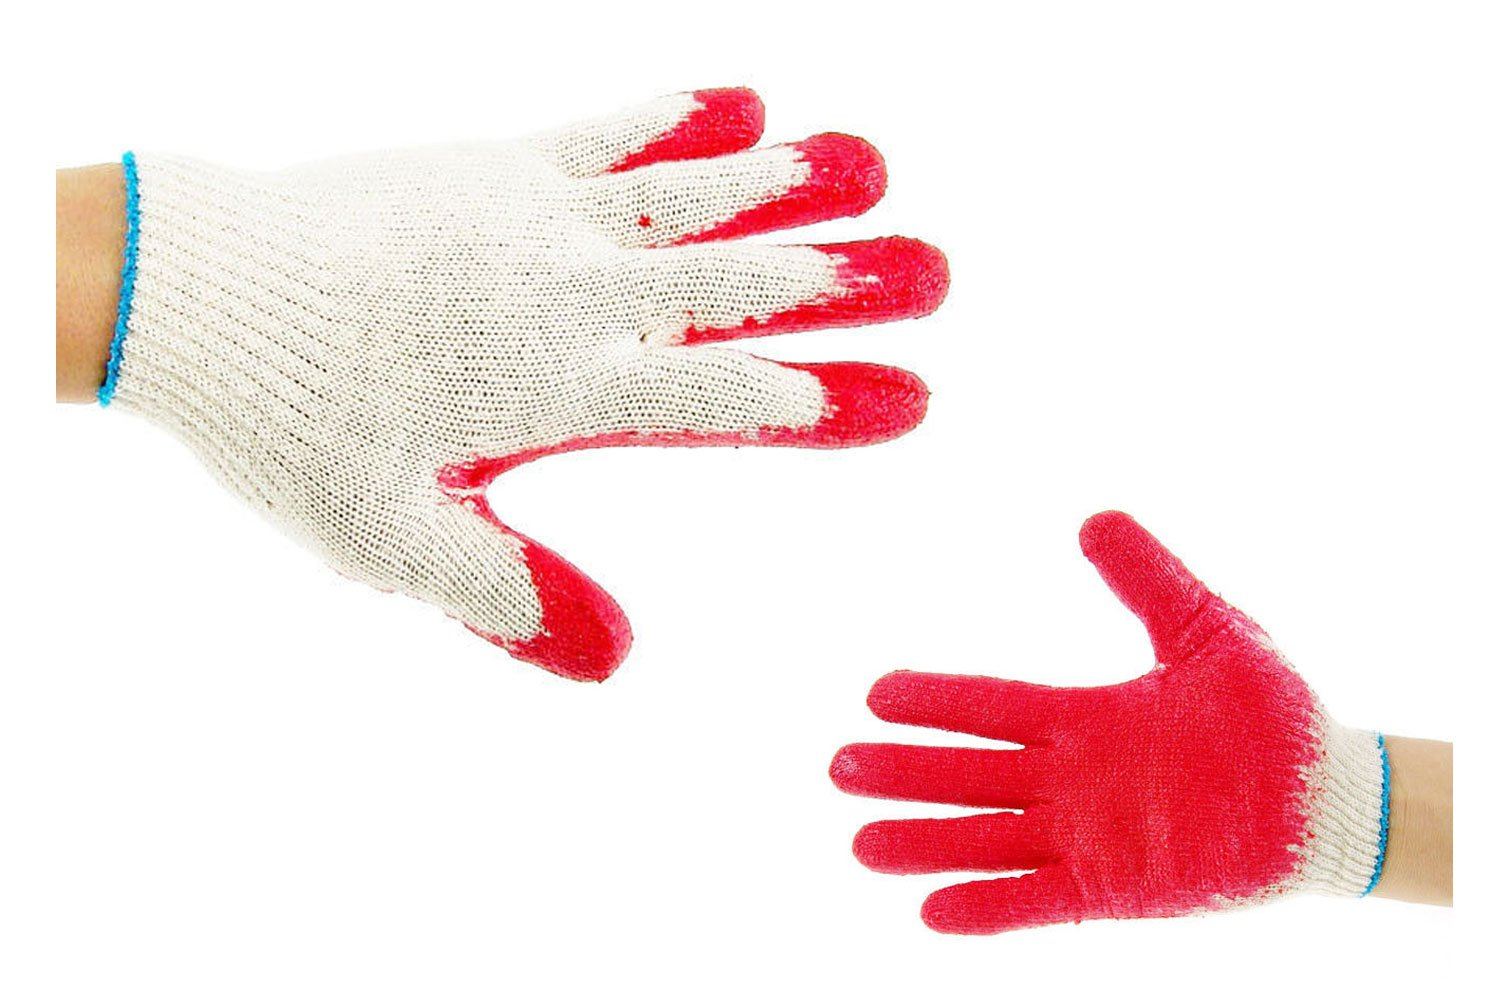 300 Pairs String Knit Red Palm Latex Dipped Gloves, Made in Korea